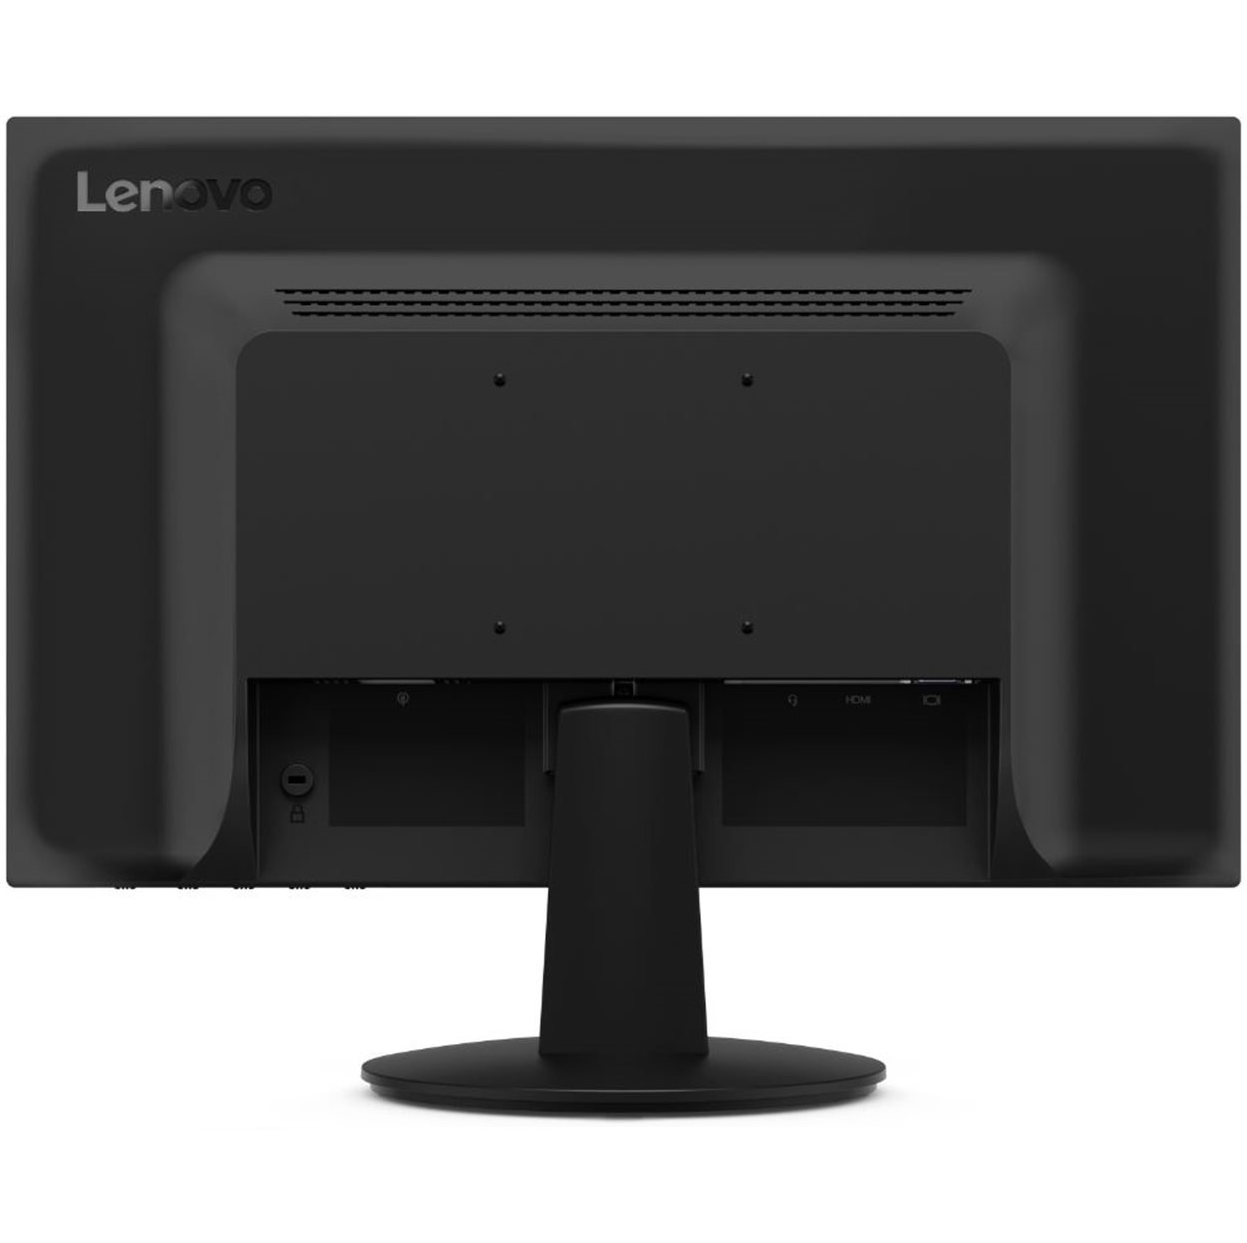 "Lenovo D22-10 (65E4KAC6EU), 21.5"" (54.61 cm) TN панел, Full HD, 5 ms, 250 cd/m2, HDMI, VGA"